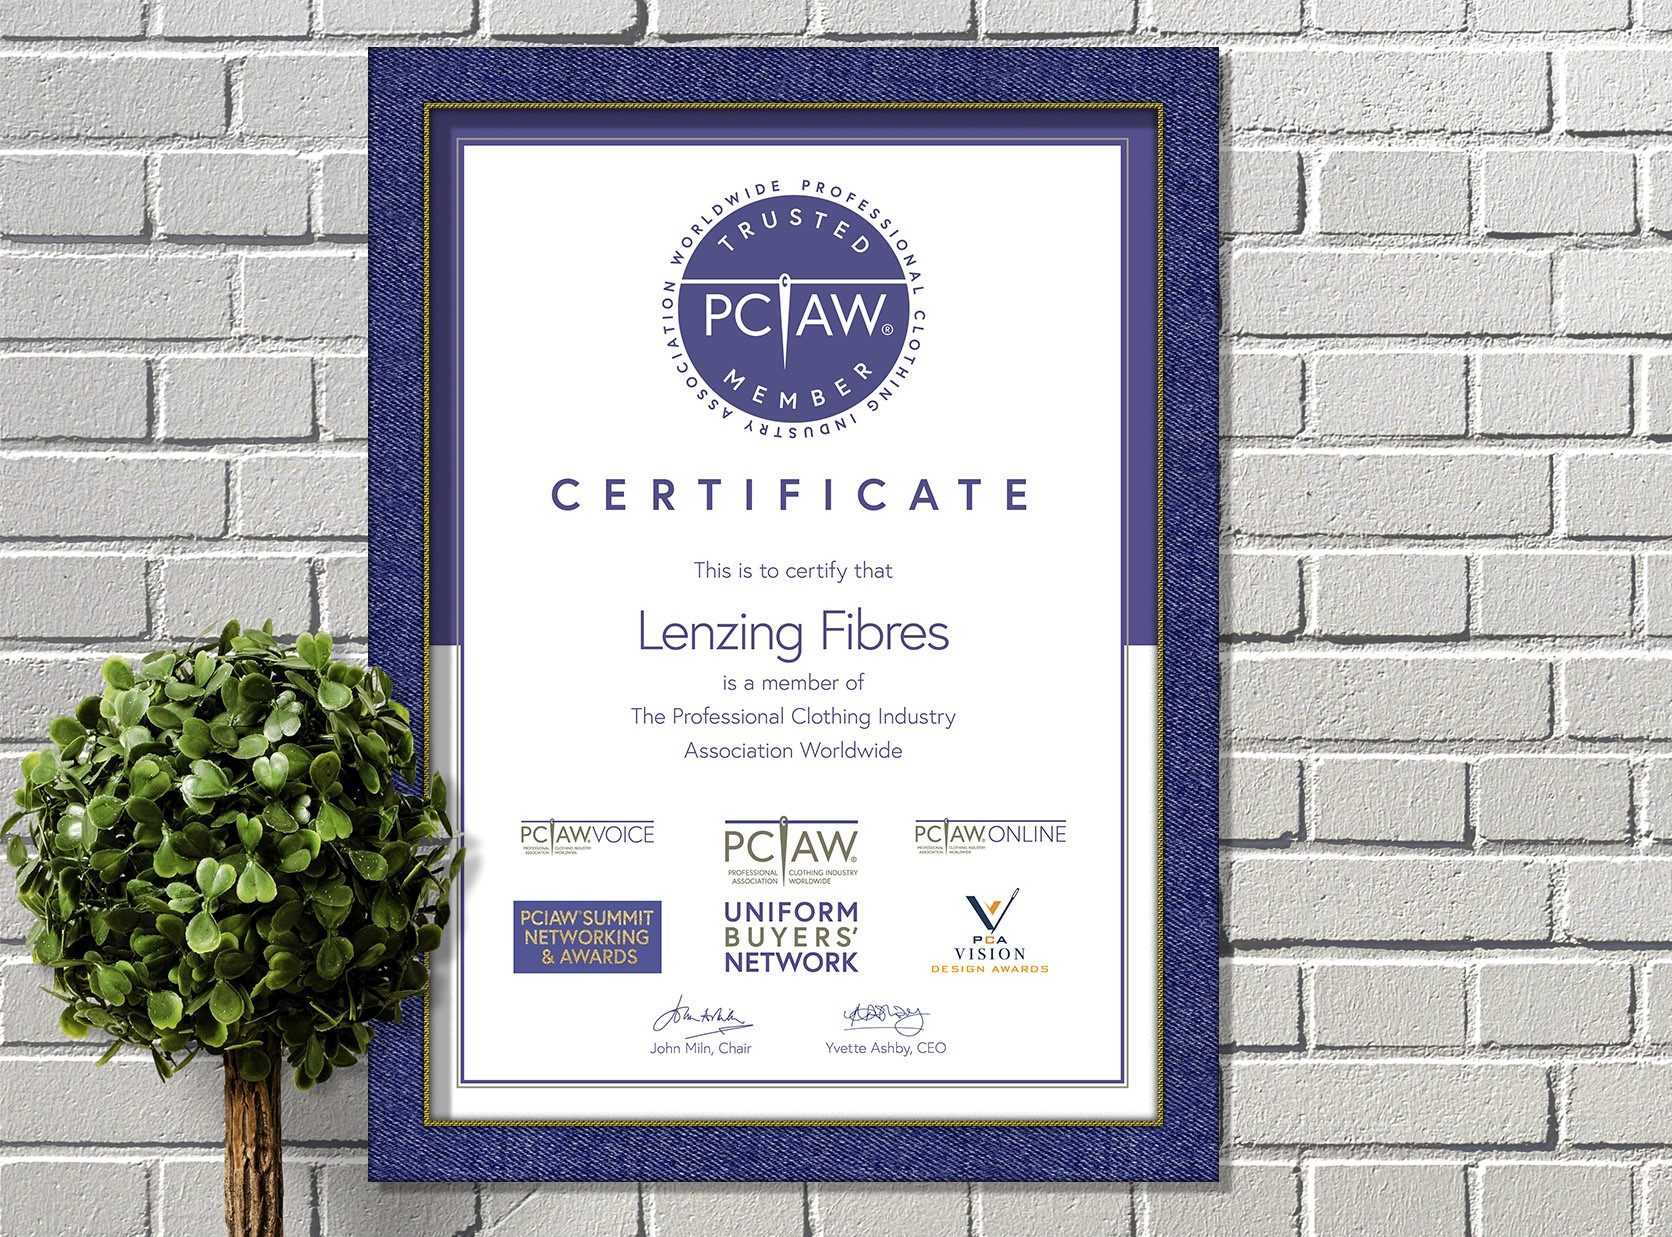 The PCIAW® is proud to include Lenzing Fibres, the leading global supplier of sustainably produced specialty fibres, as a PCIAW® Trusted Member.